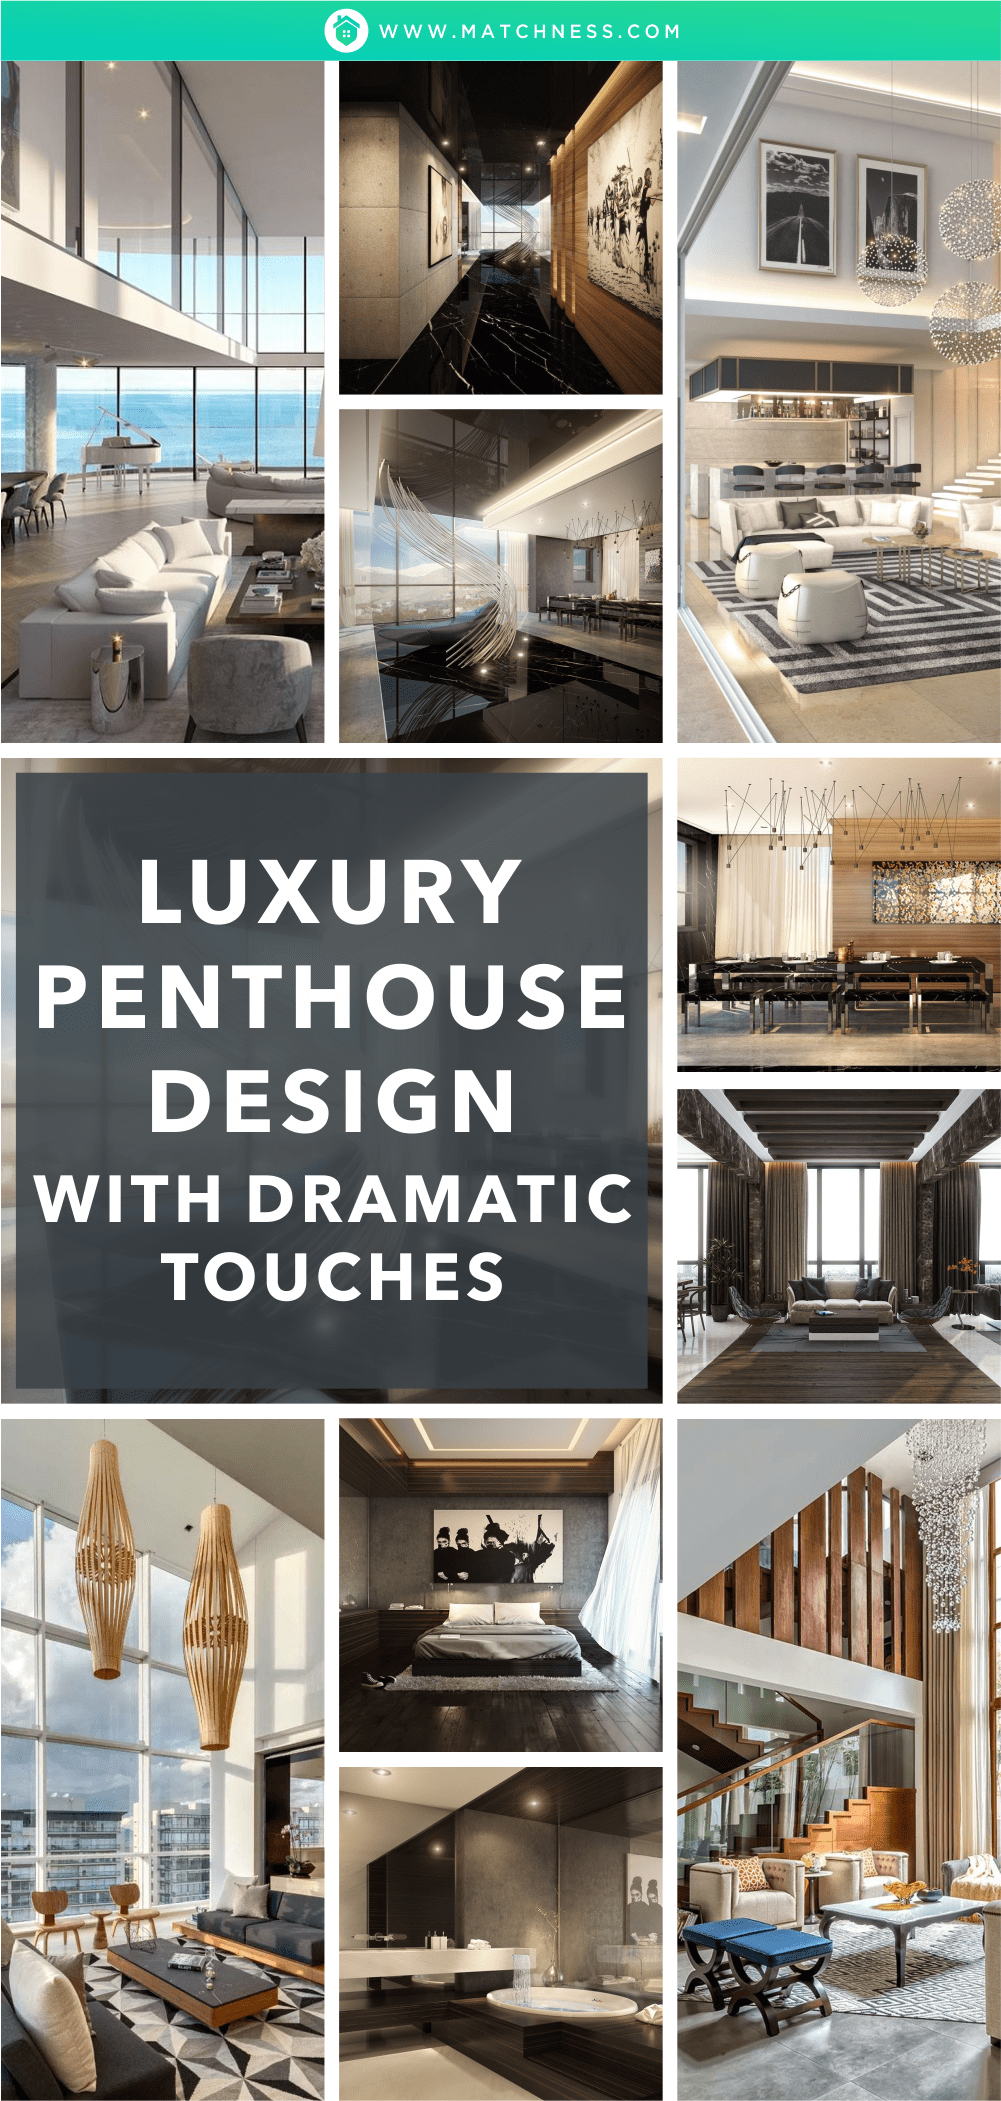 Luxury-penthouse-design-with-dramatic-touches-1